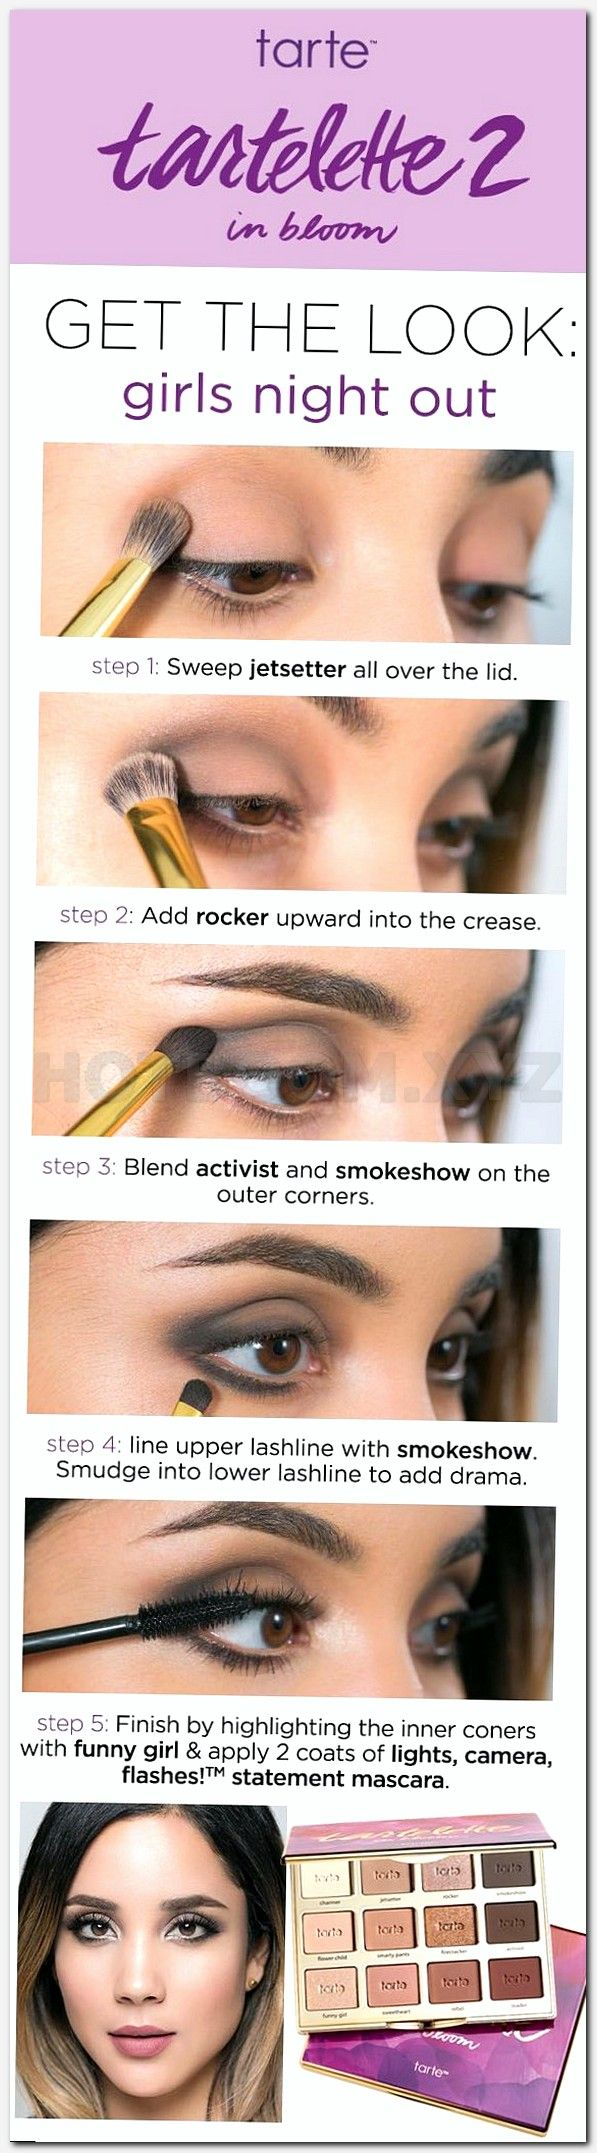 How To Put On Basic Eyeshadow, Makeup Report, Que Es Make Up, Best